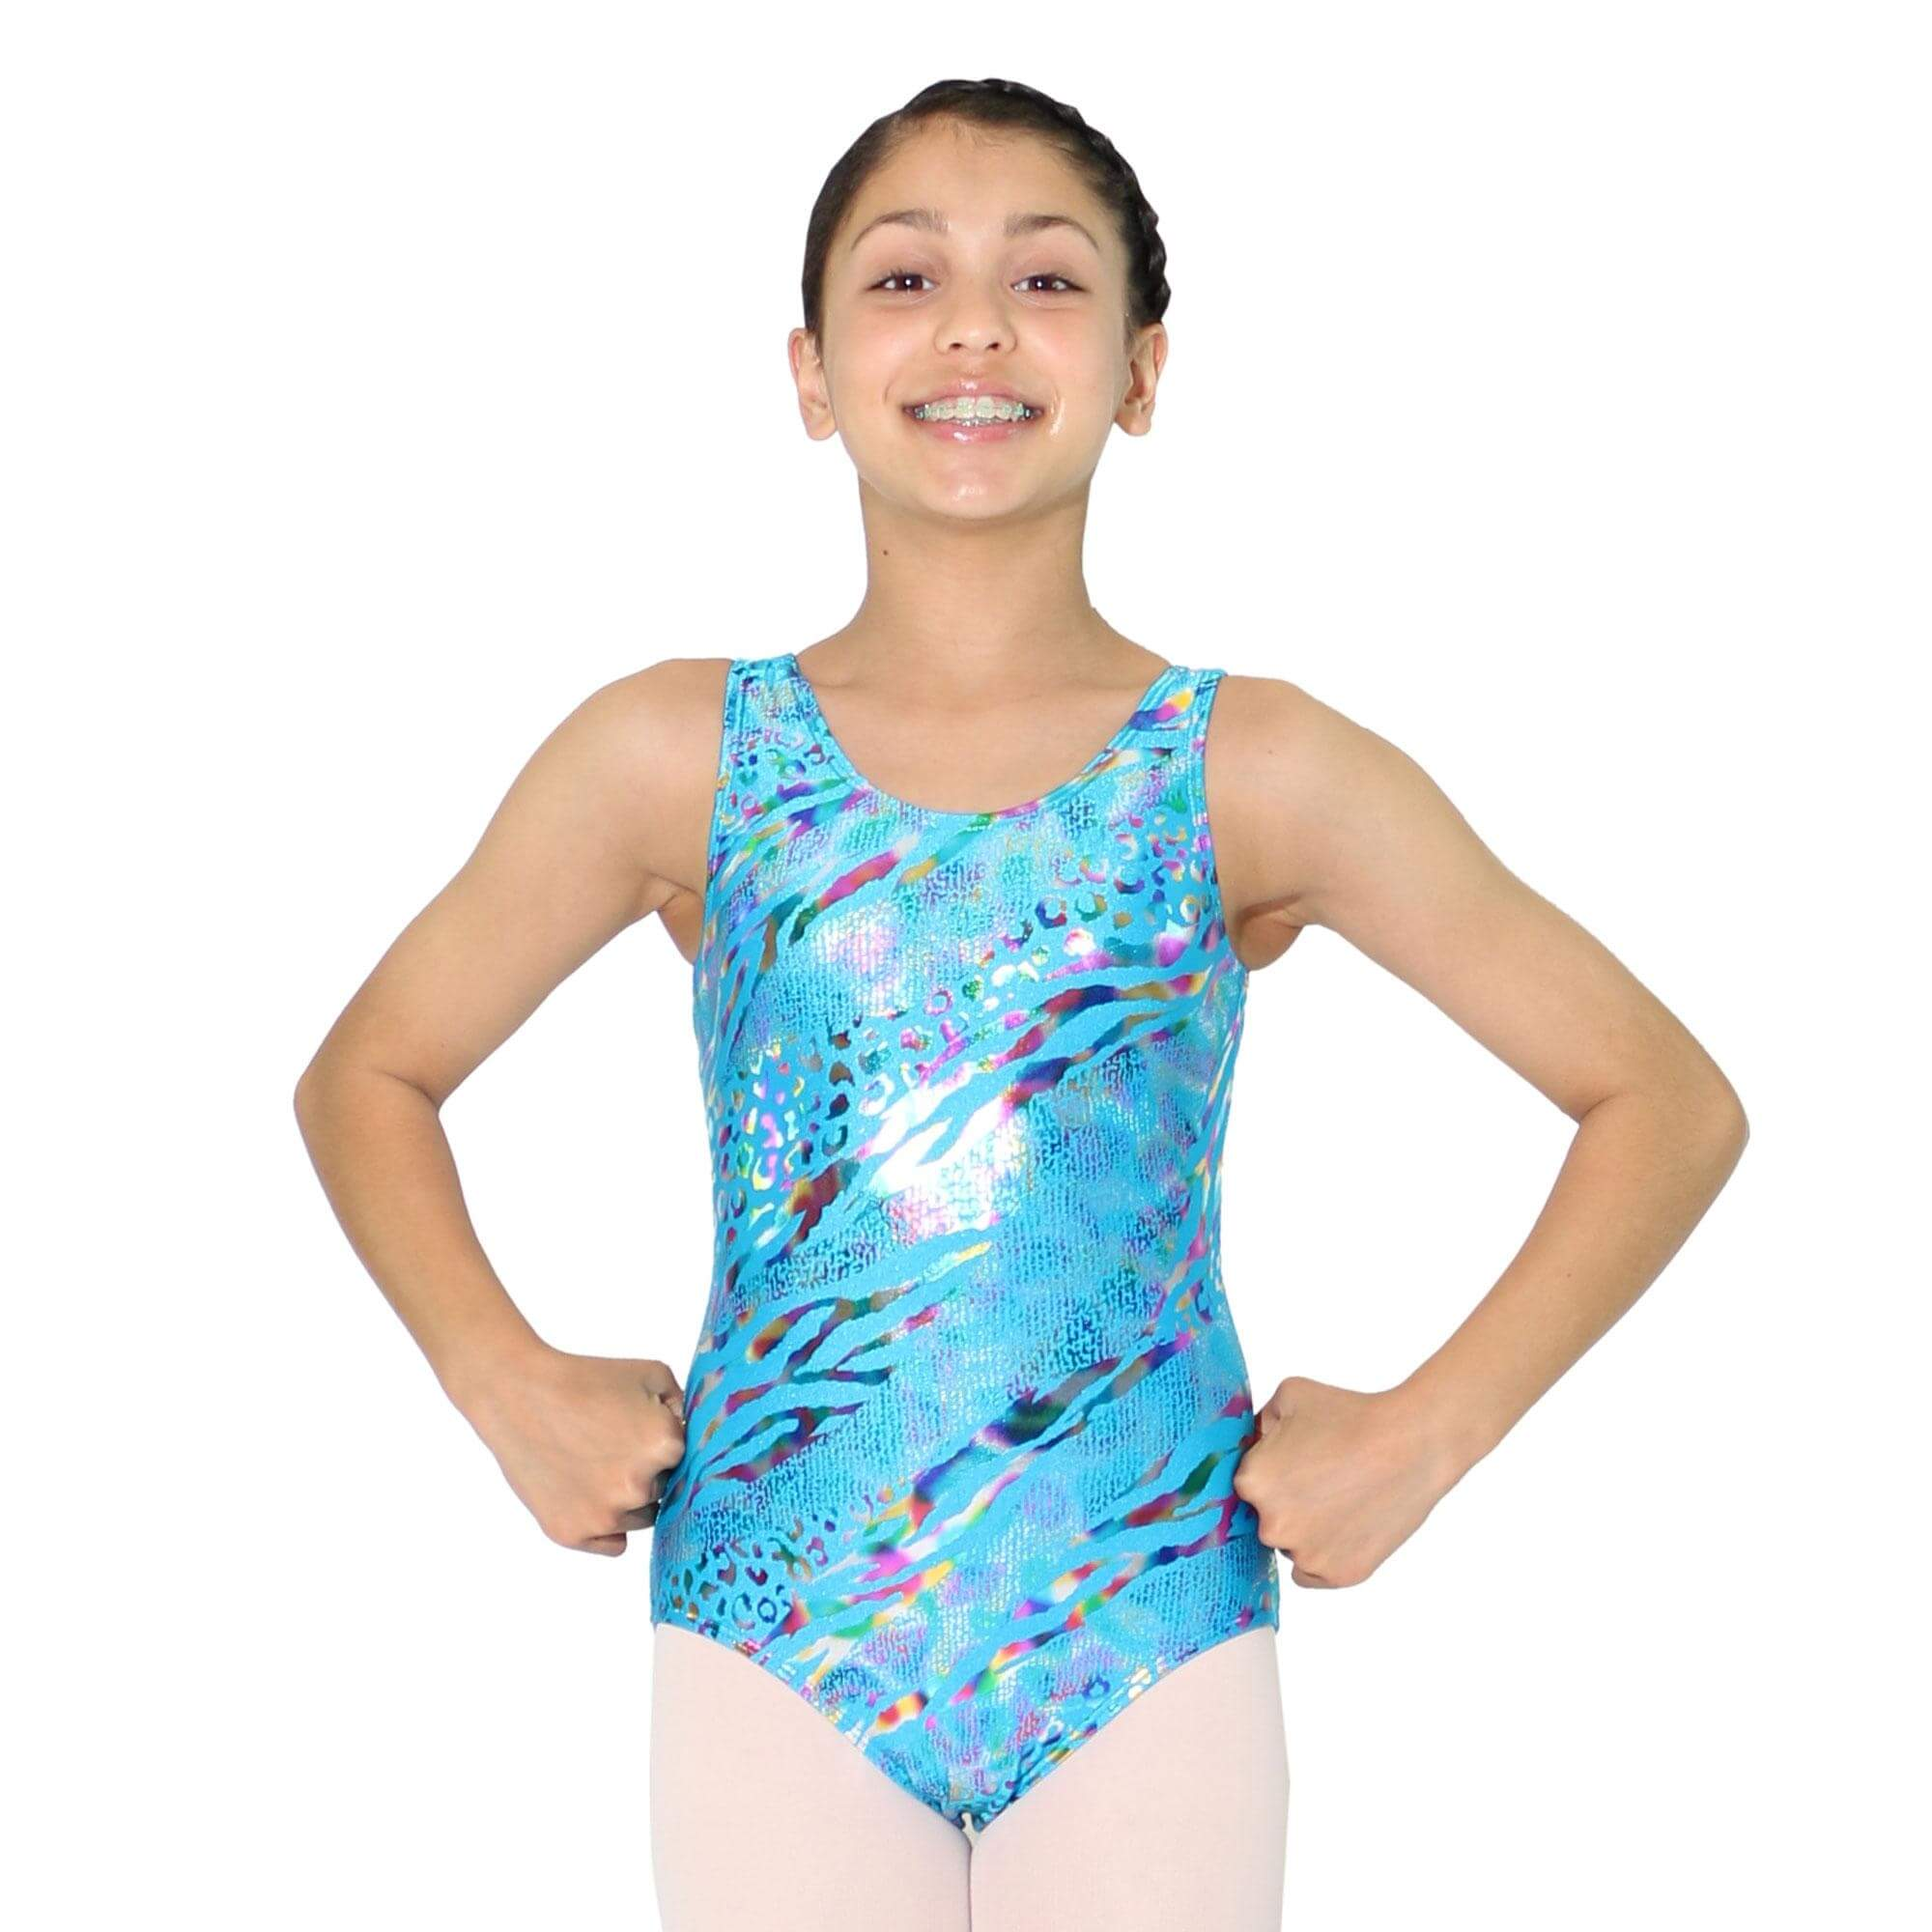 cc930fac3 Reflectionz  leotards for girls